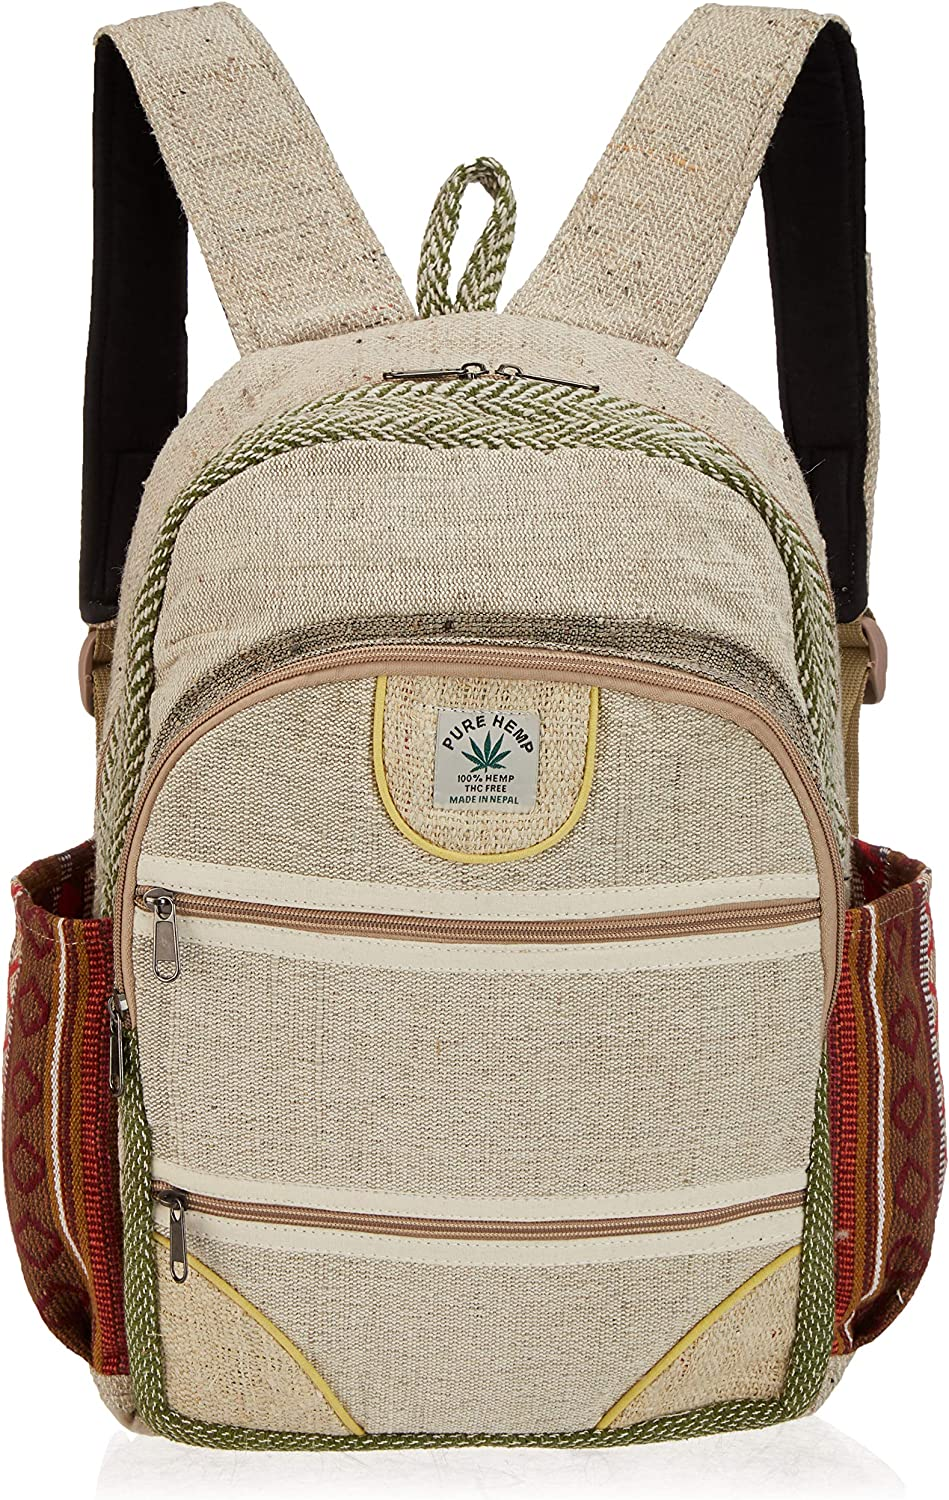 Pure Hemp Natural Light Greay Color Backpack Handmade Nepal with Laptop Sleeve - Fashion Cute Travel School College Shoulder Bag/Bookbags/Daypack